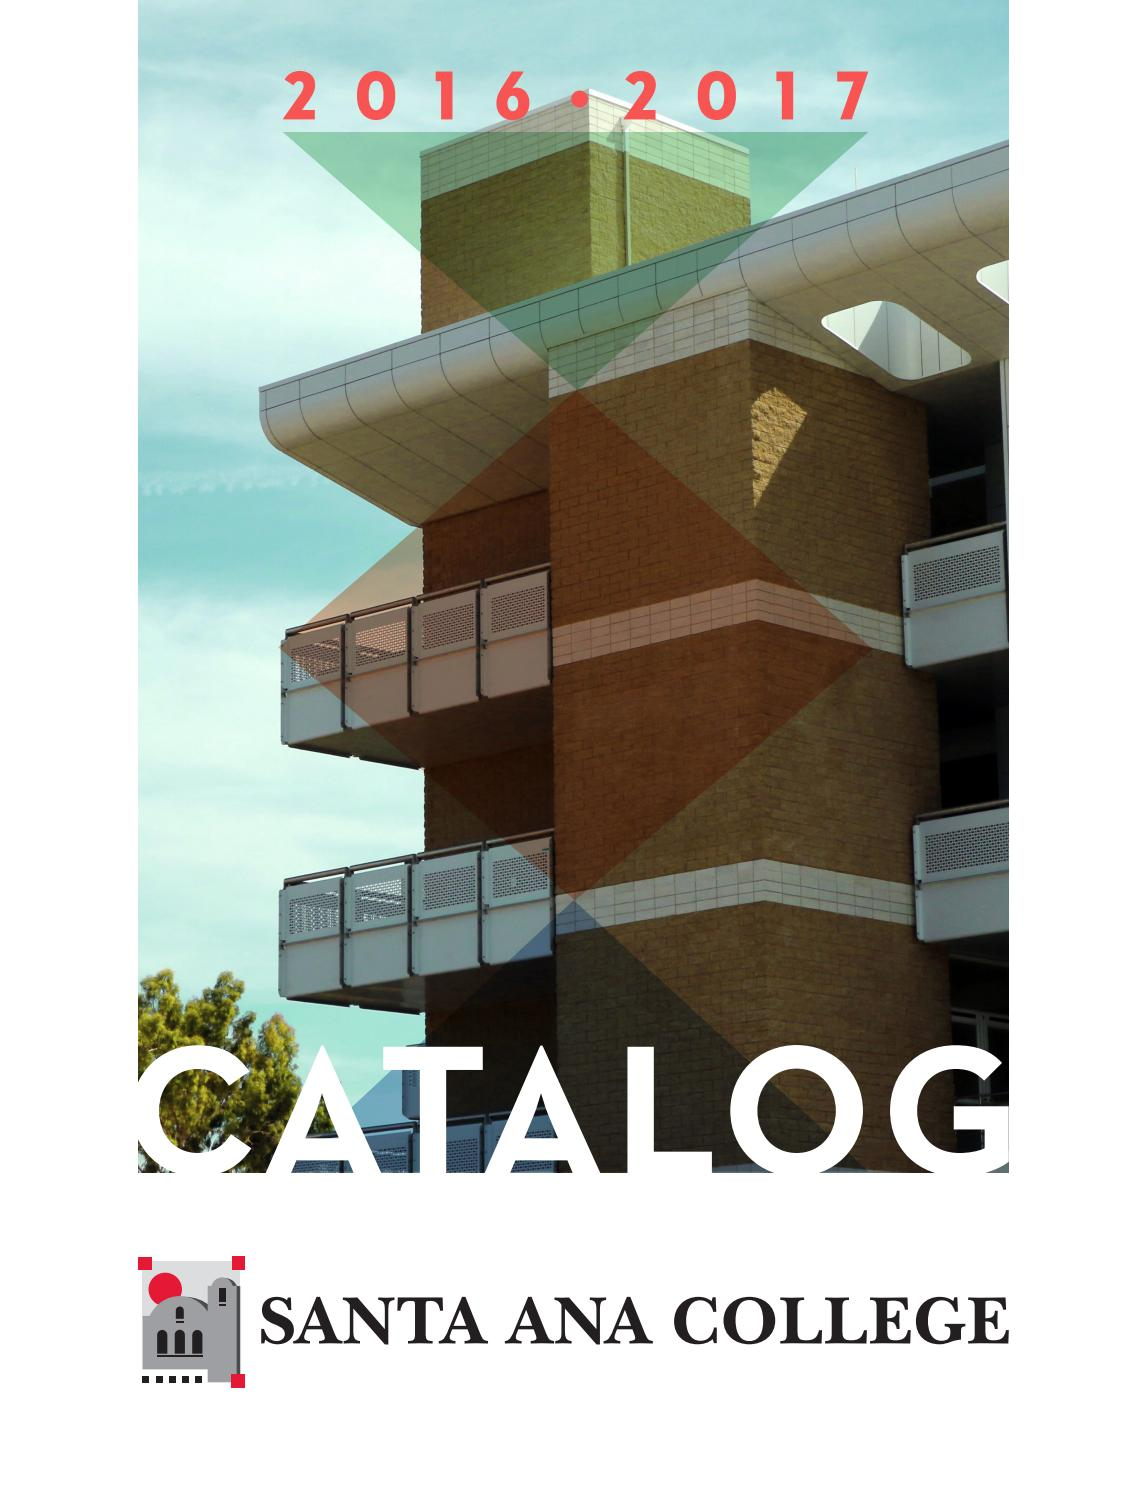 Santa Ana College Catalog 2016 2017 By Issuu Automatic Cut Off Staircase Light Circuit Electronic Circuits Free